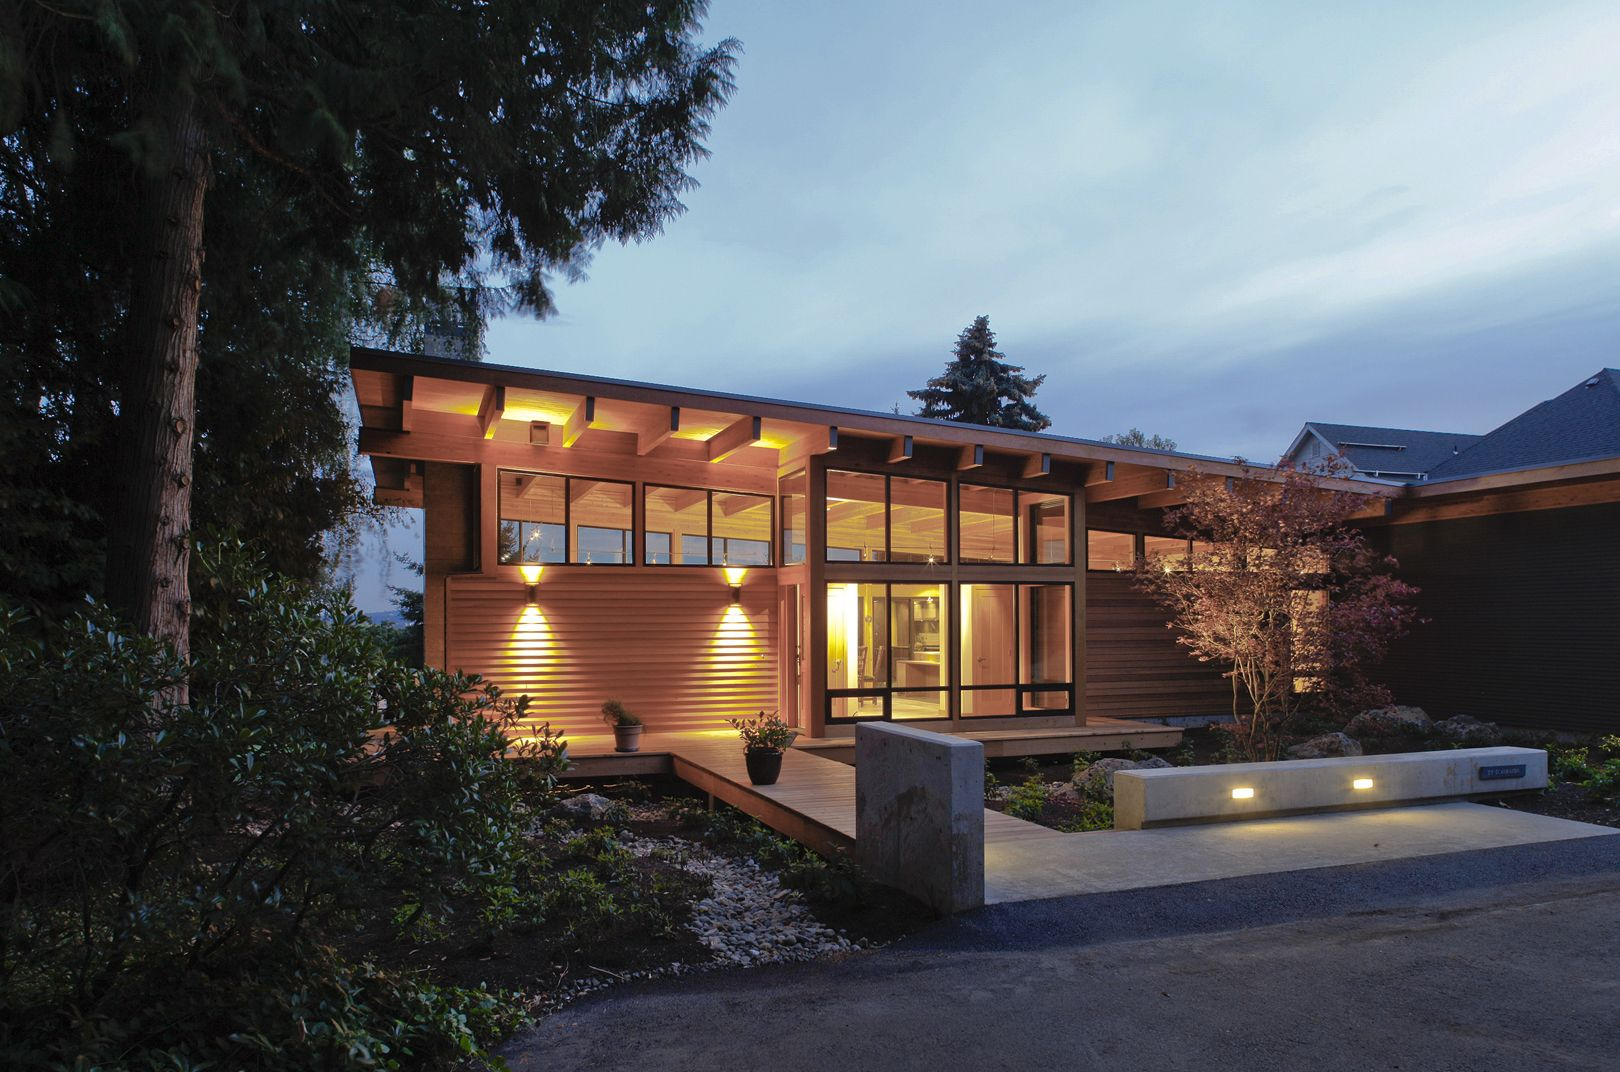 northwest modern home architecture.  Architecture Vancouver Airport Home  Pacific Northwest Modern Vancouver  Washington Singlelevel Aginginplace Designed By Scott Edwards Architecture  Inside Home Pinterest